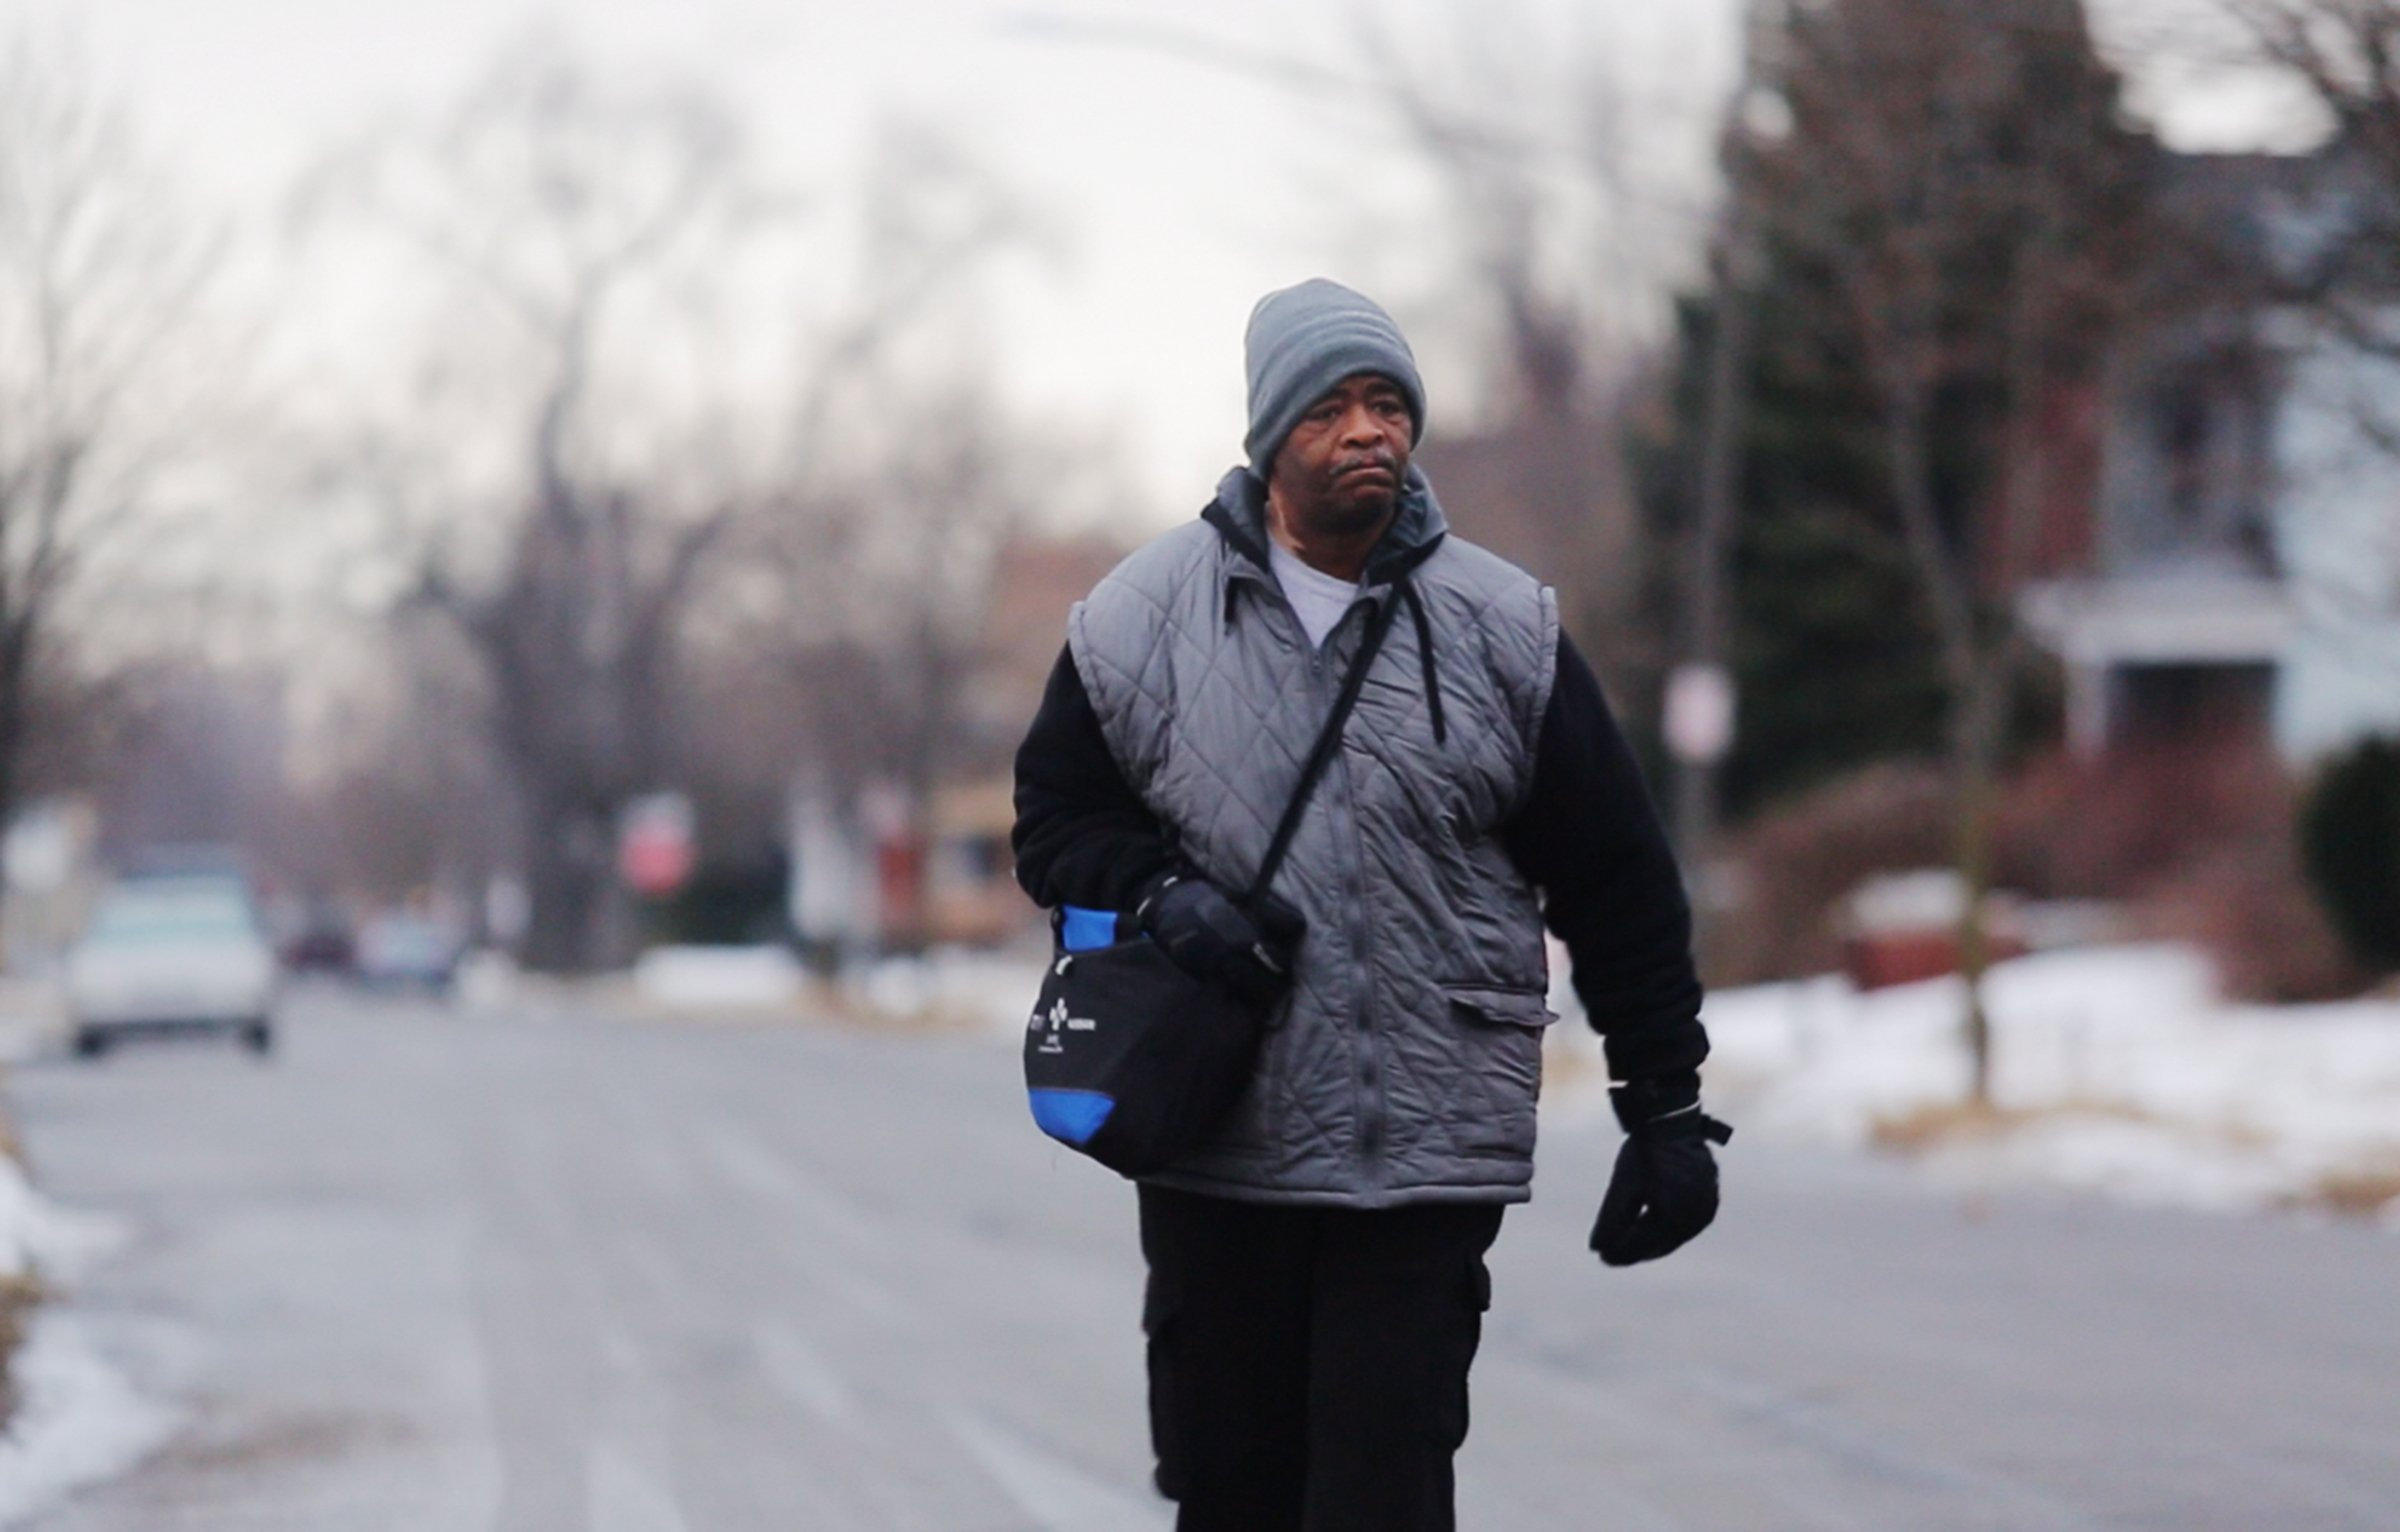 Detroit's James Robertson Walks 21 Miles A Day To Work